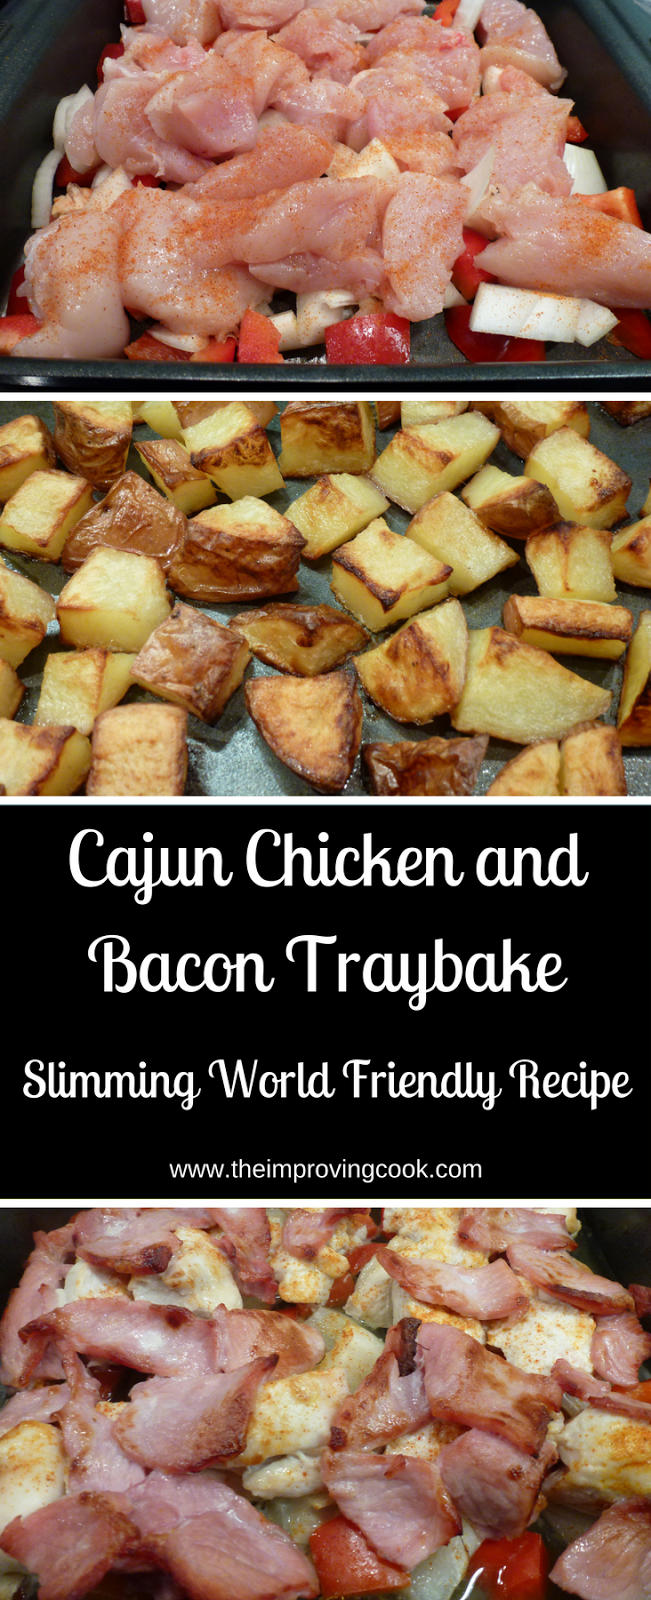 Cajun Chicken and Bacon Traybake pinnable image